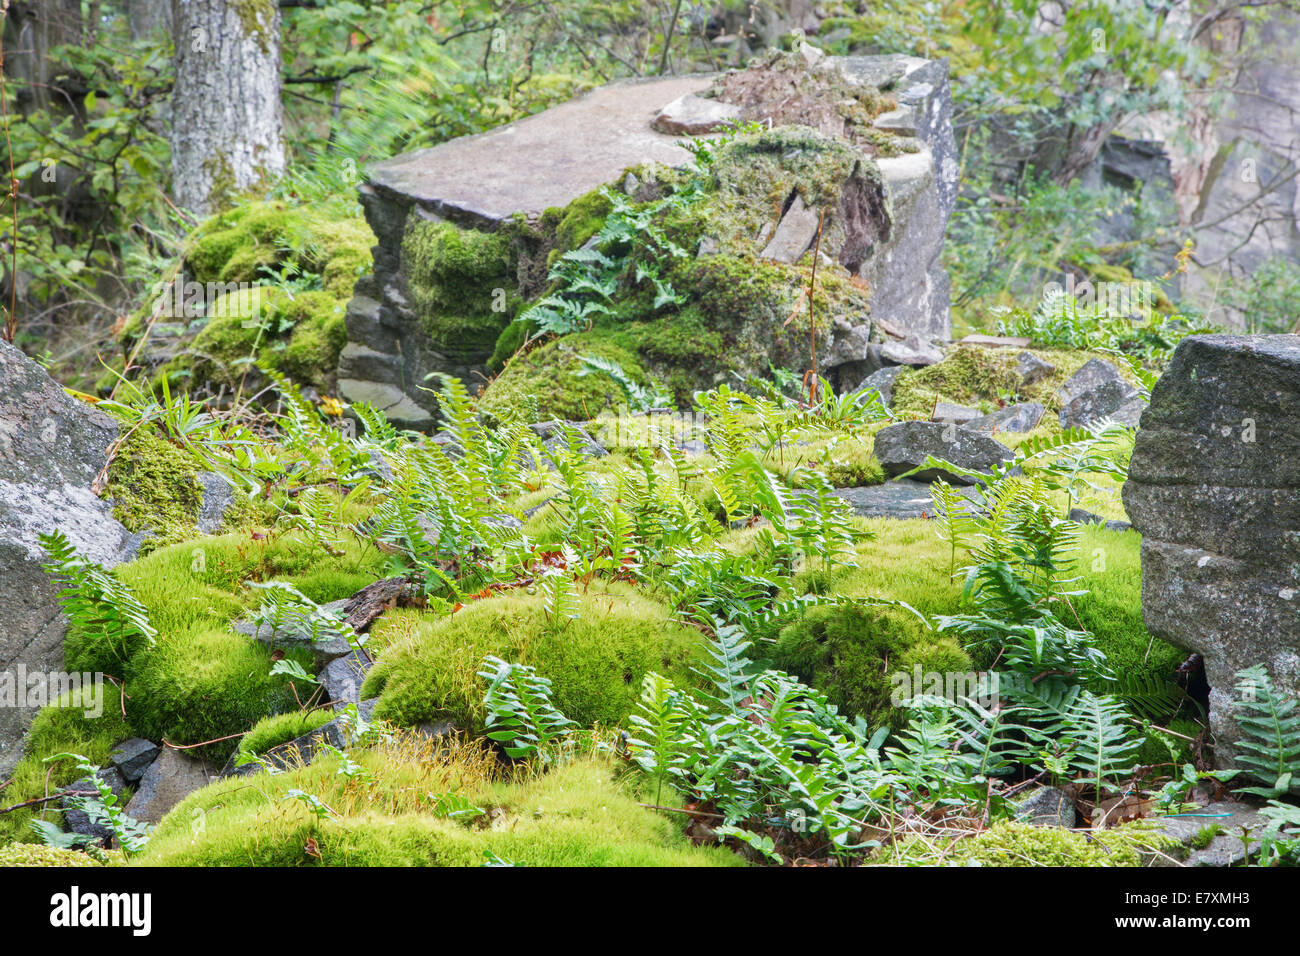 The bracken in the old stone pit - Stock Image